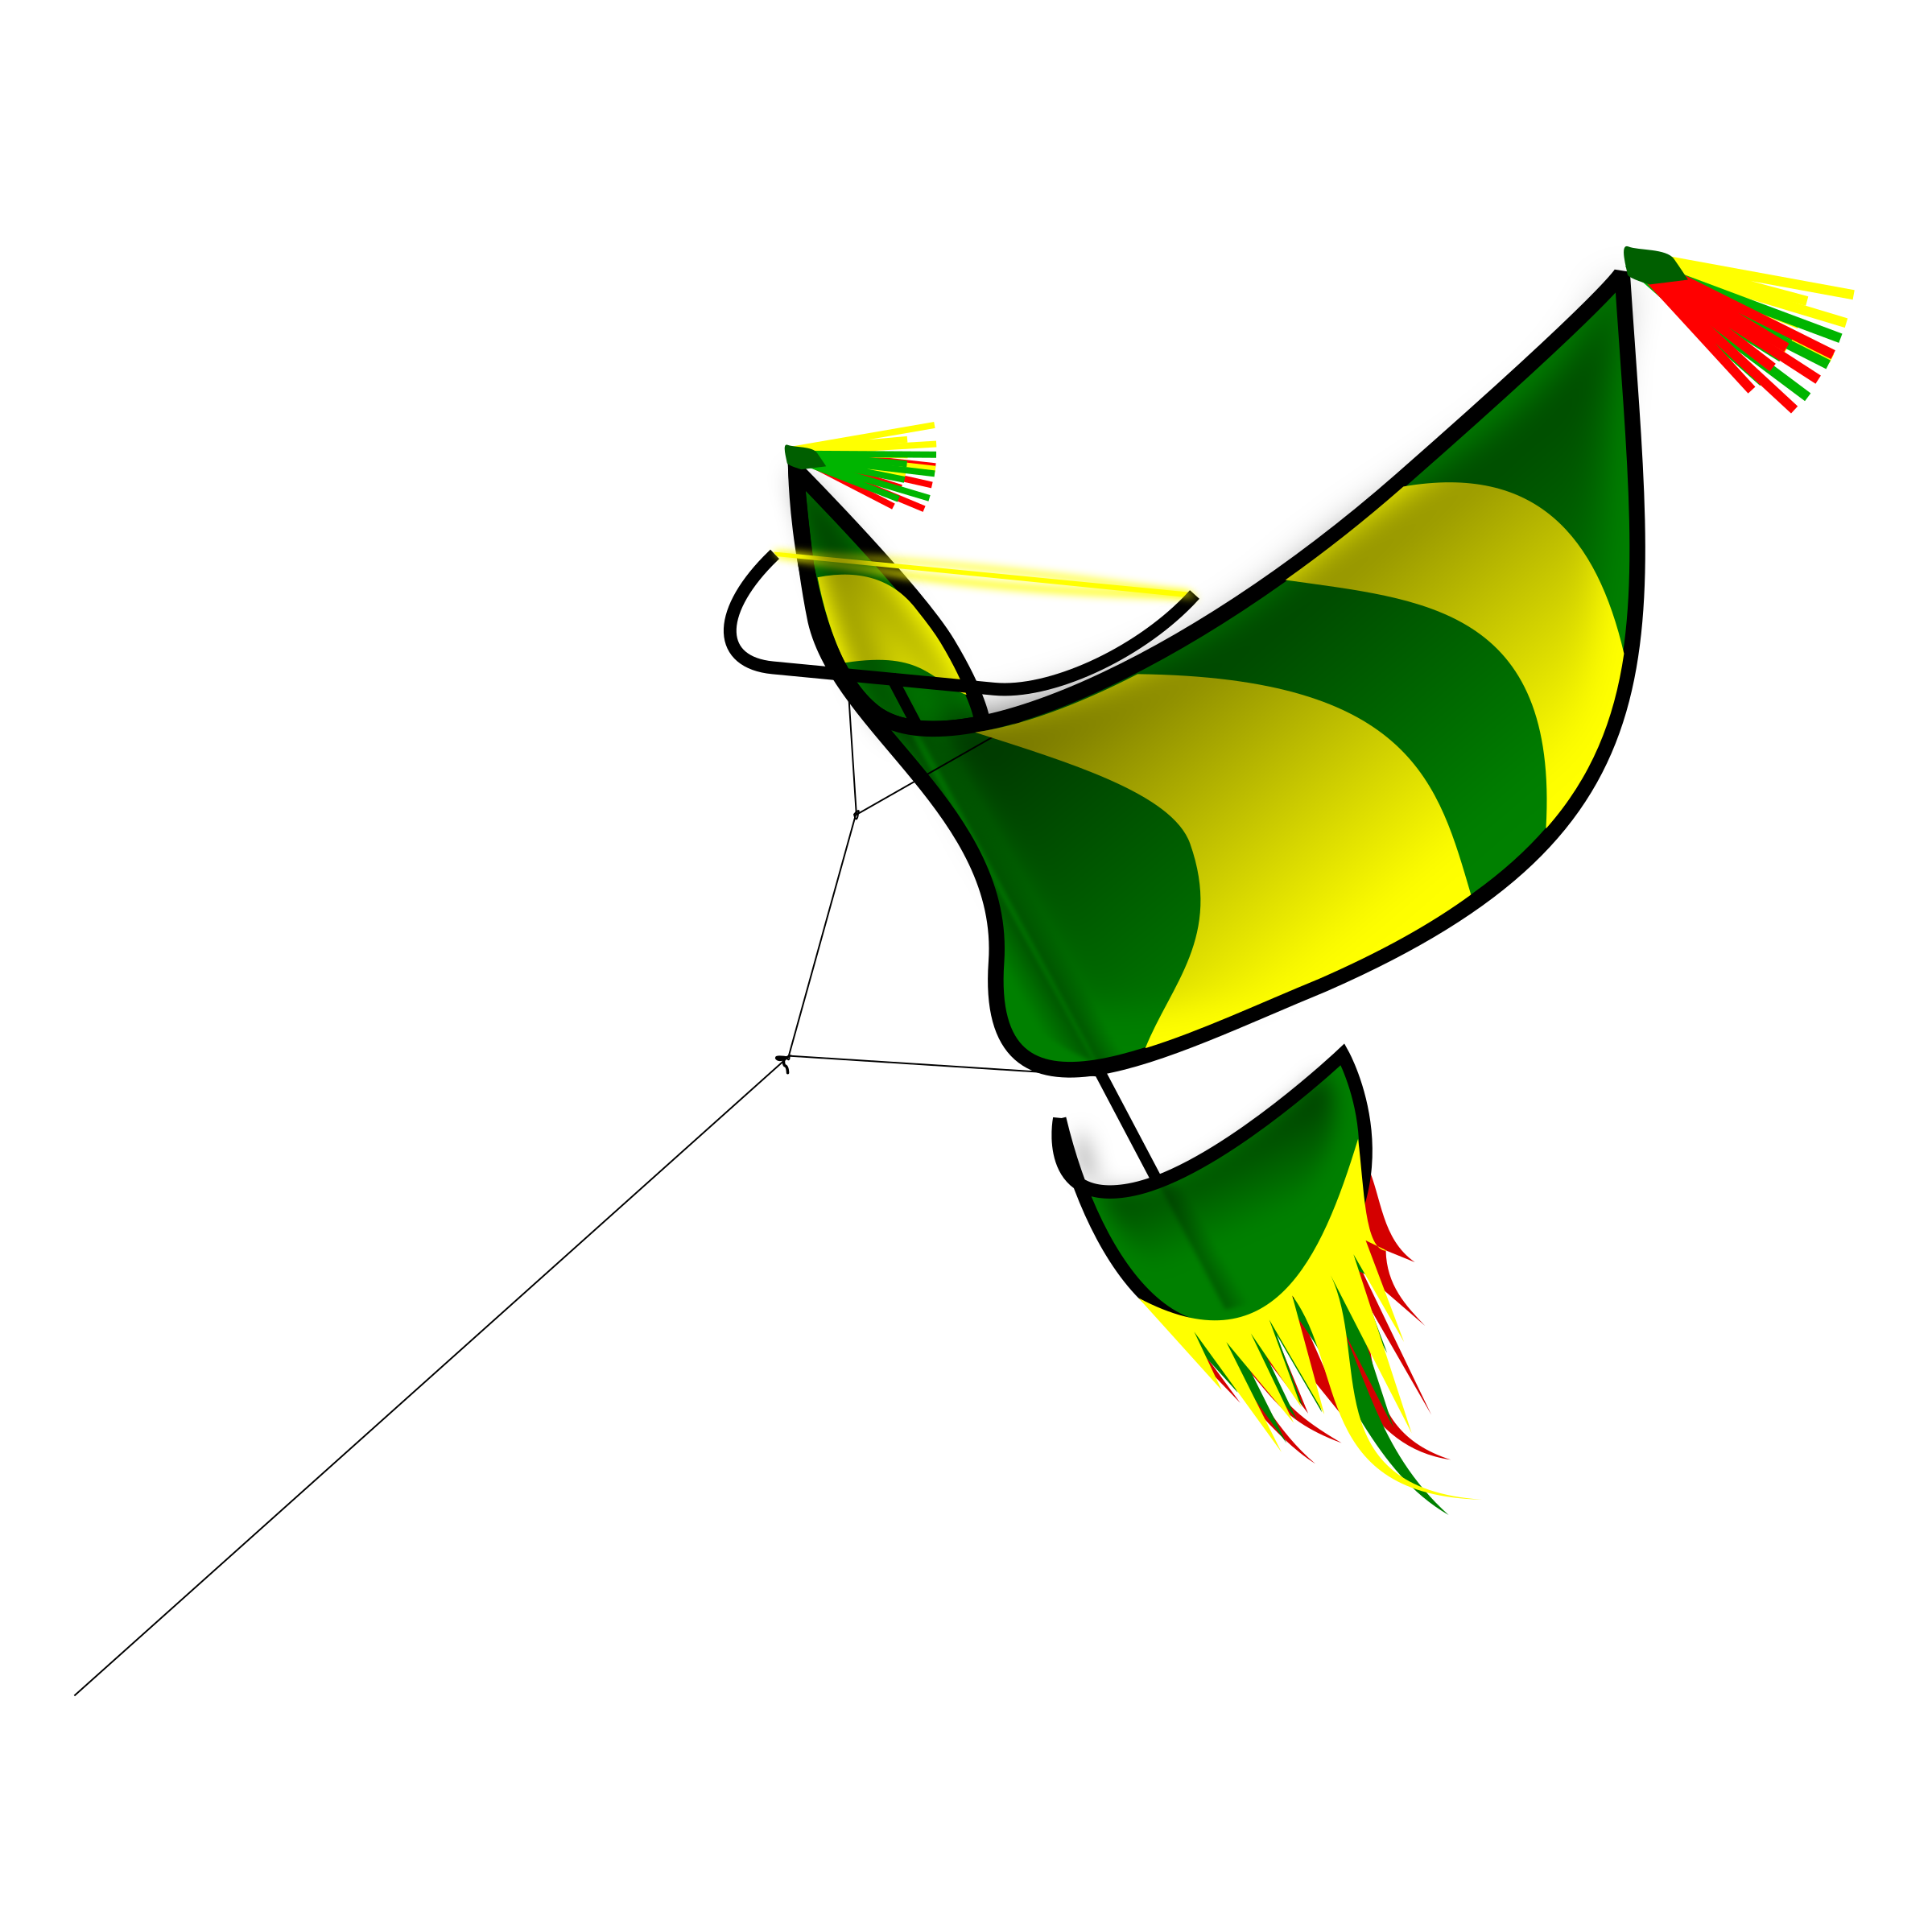 Clipart kite traditional. Big image png